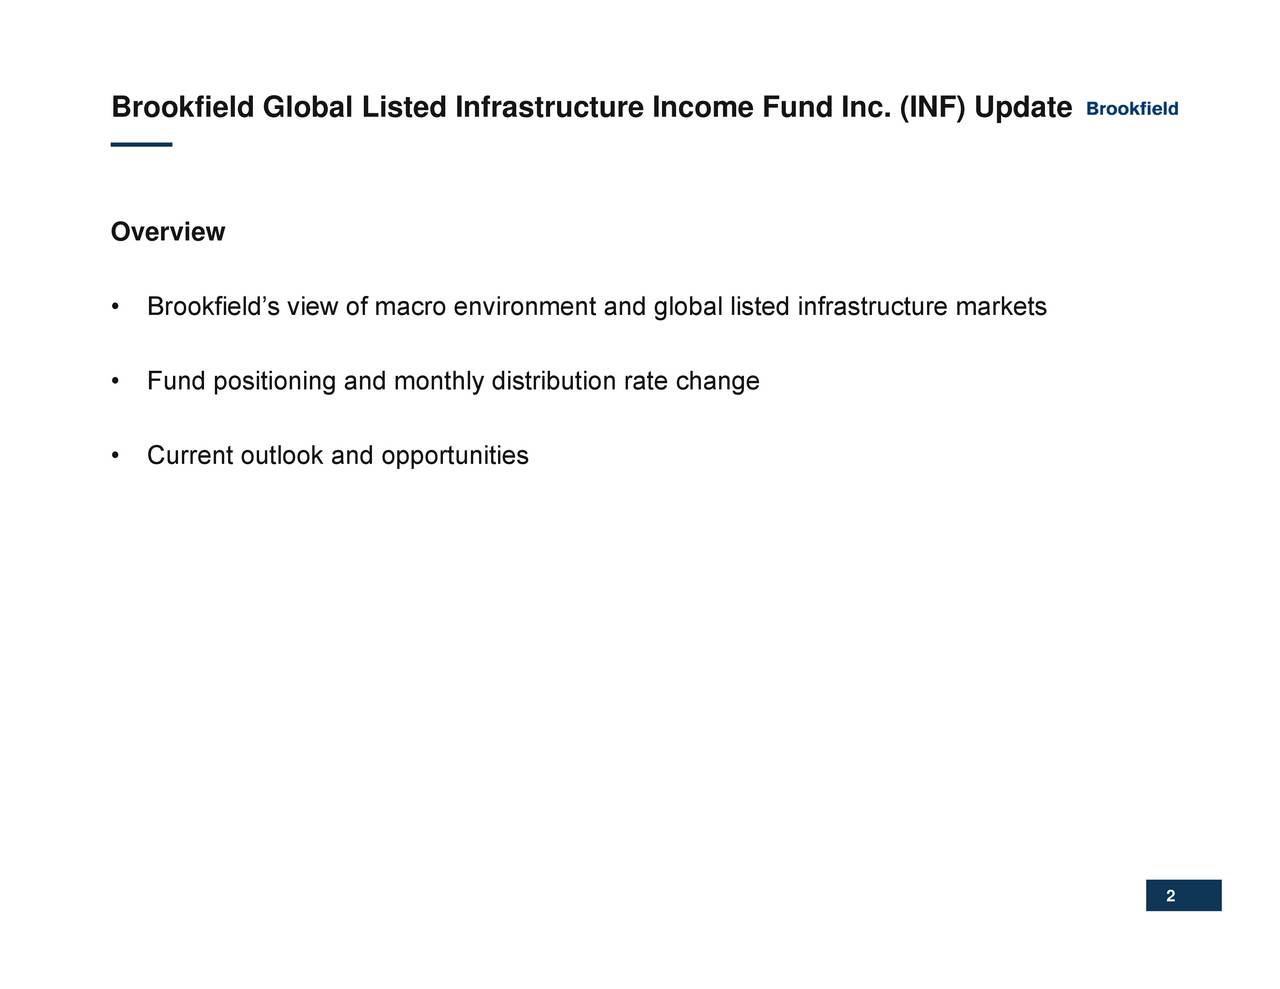 and global listed infrastructure markets Brookfield Overvi ewBrokfFundd Cositonioguanodkaondtoypdirtrbitisn rate change